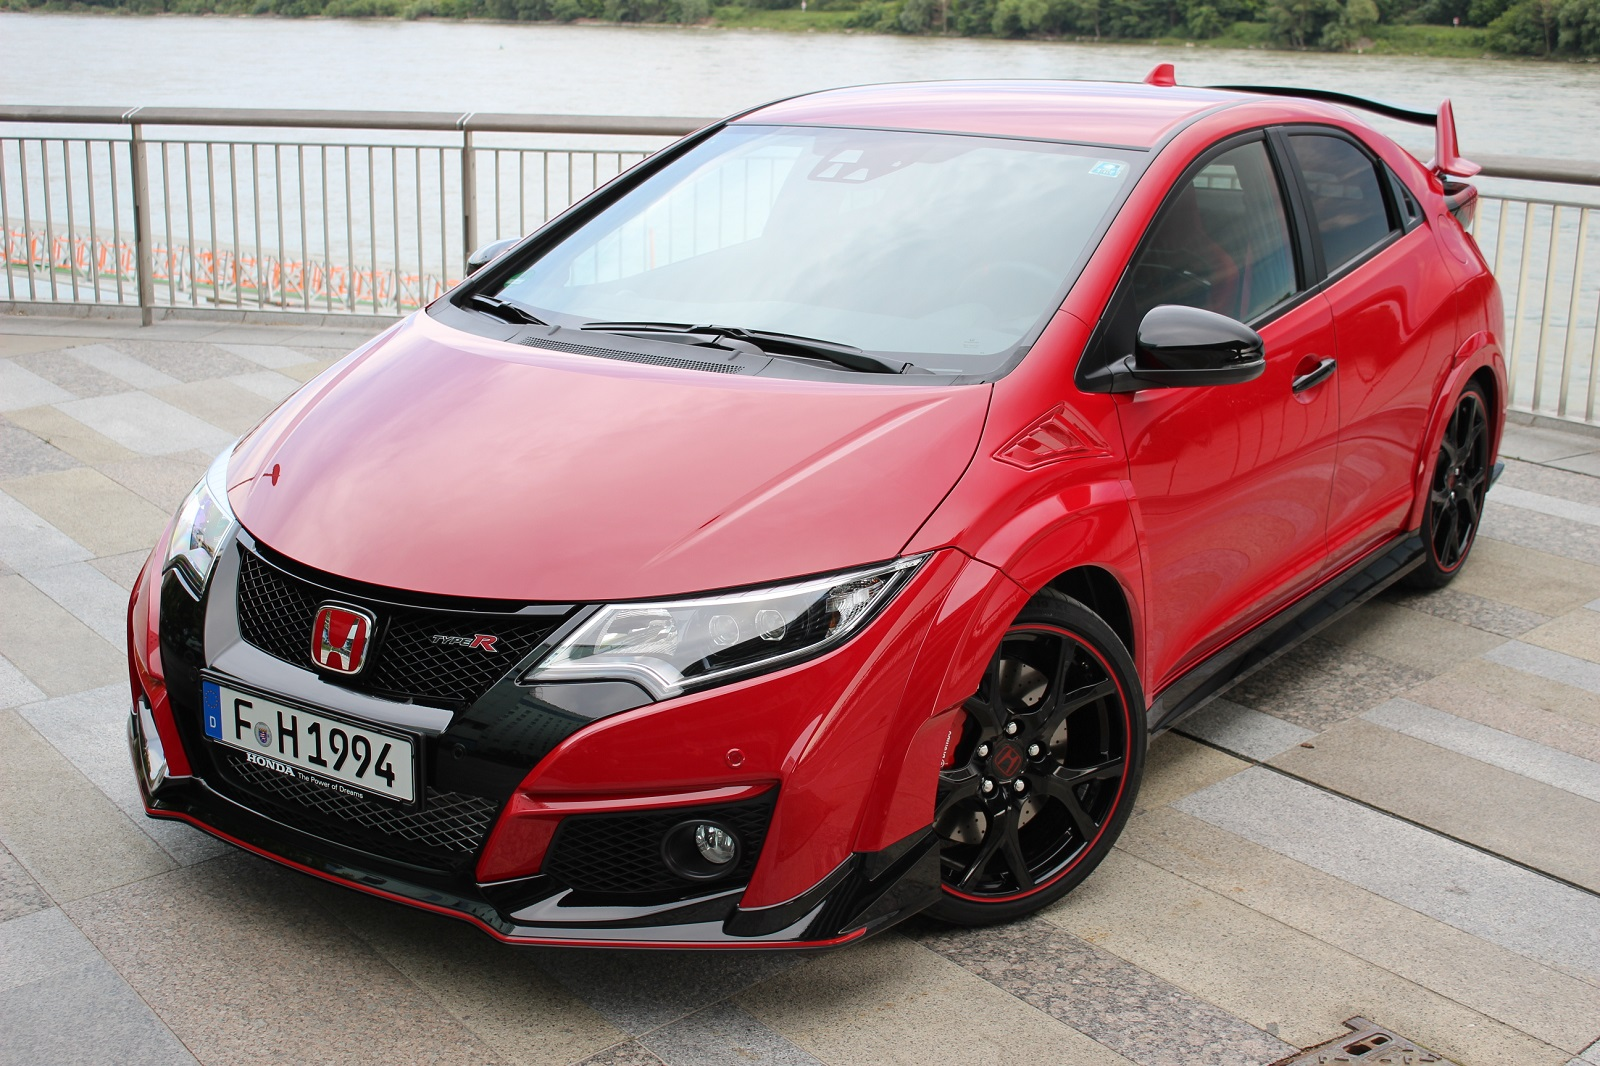 honda civic type r occasion honda civic type r mitula voiture essai honda civic type r 2015 l. Black Bedroom Furniture Sets. Home Design Ideas